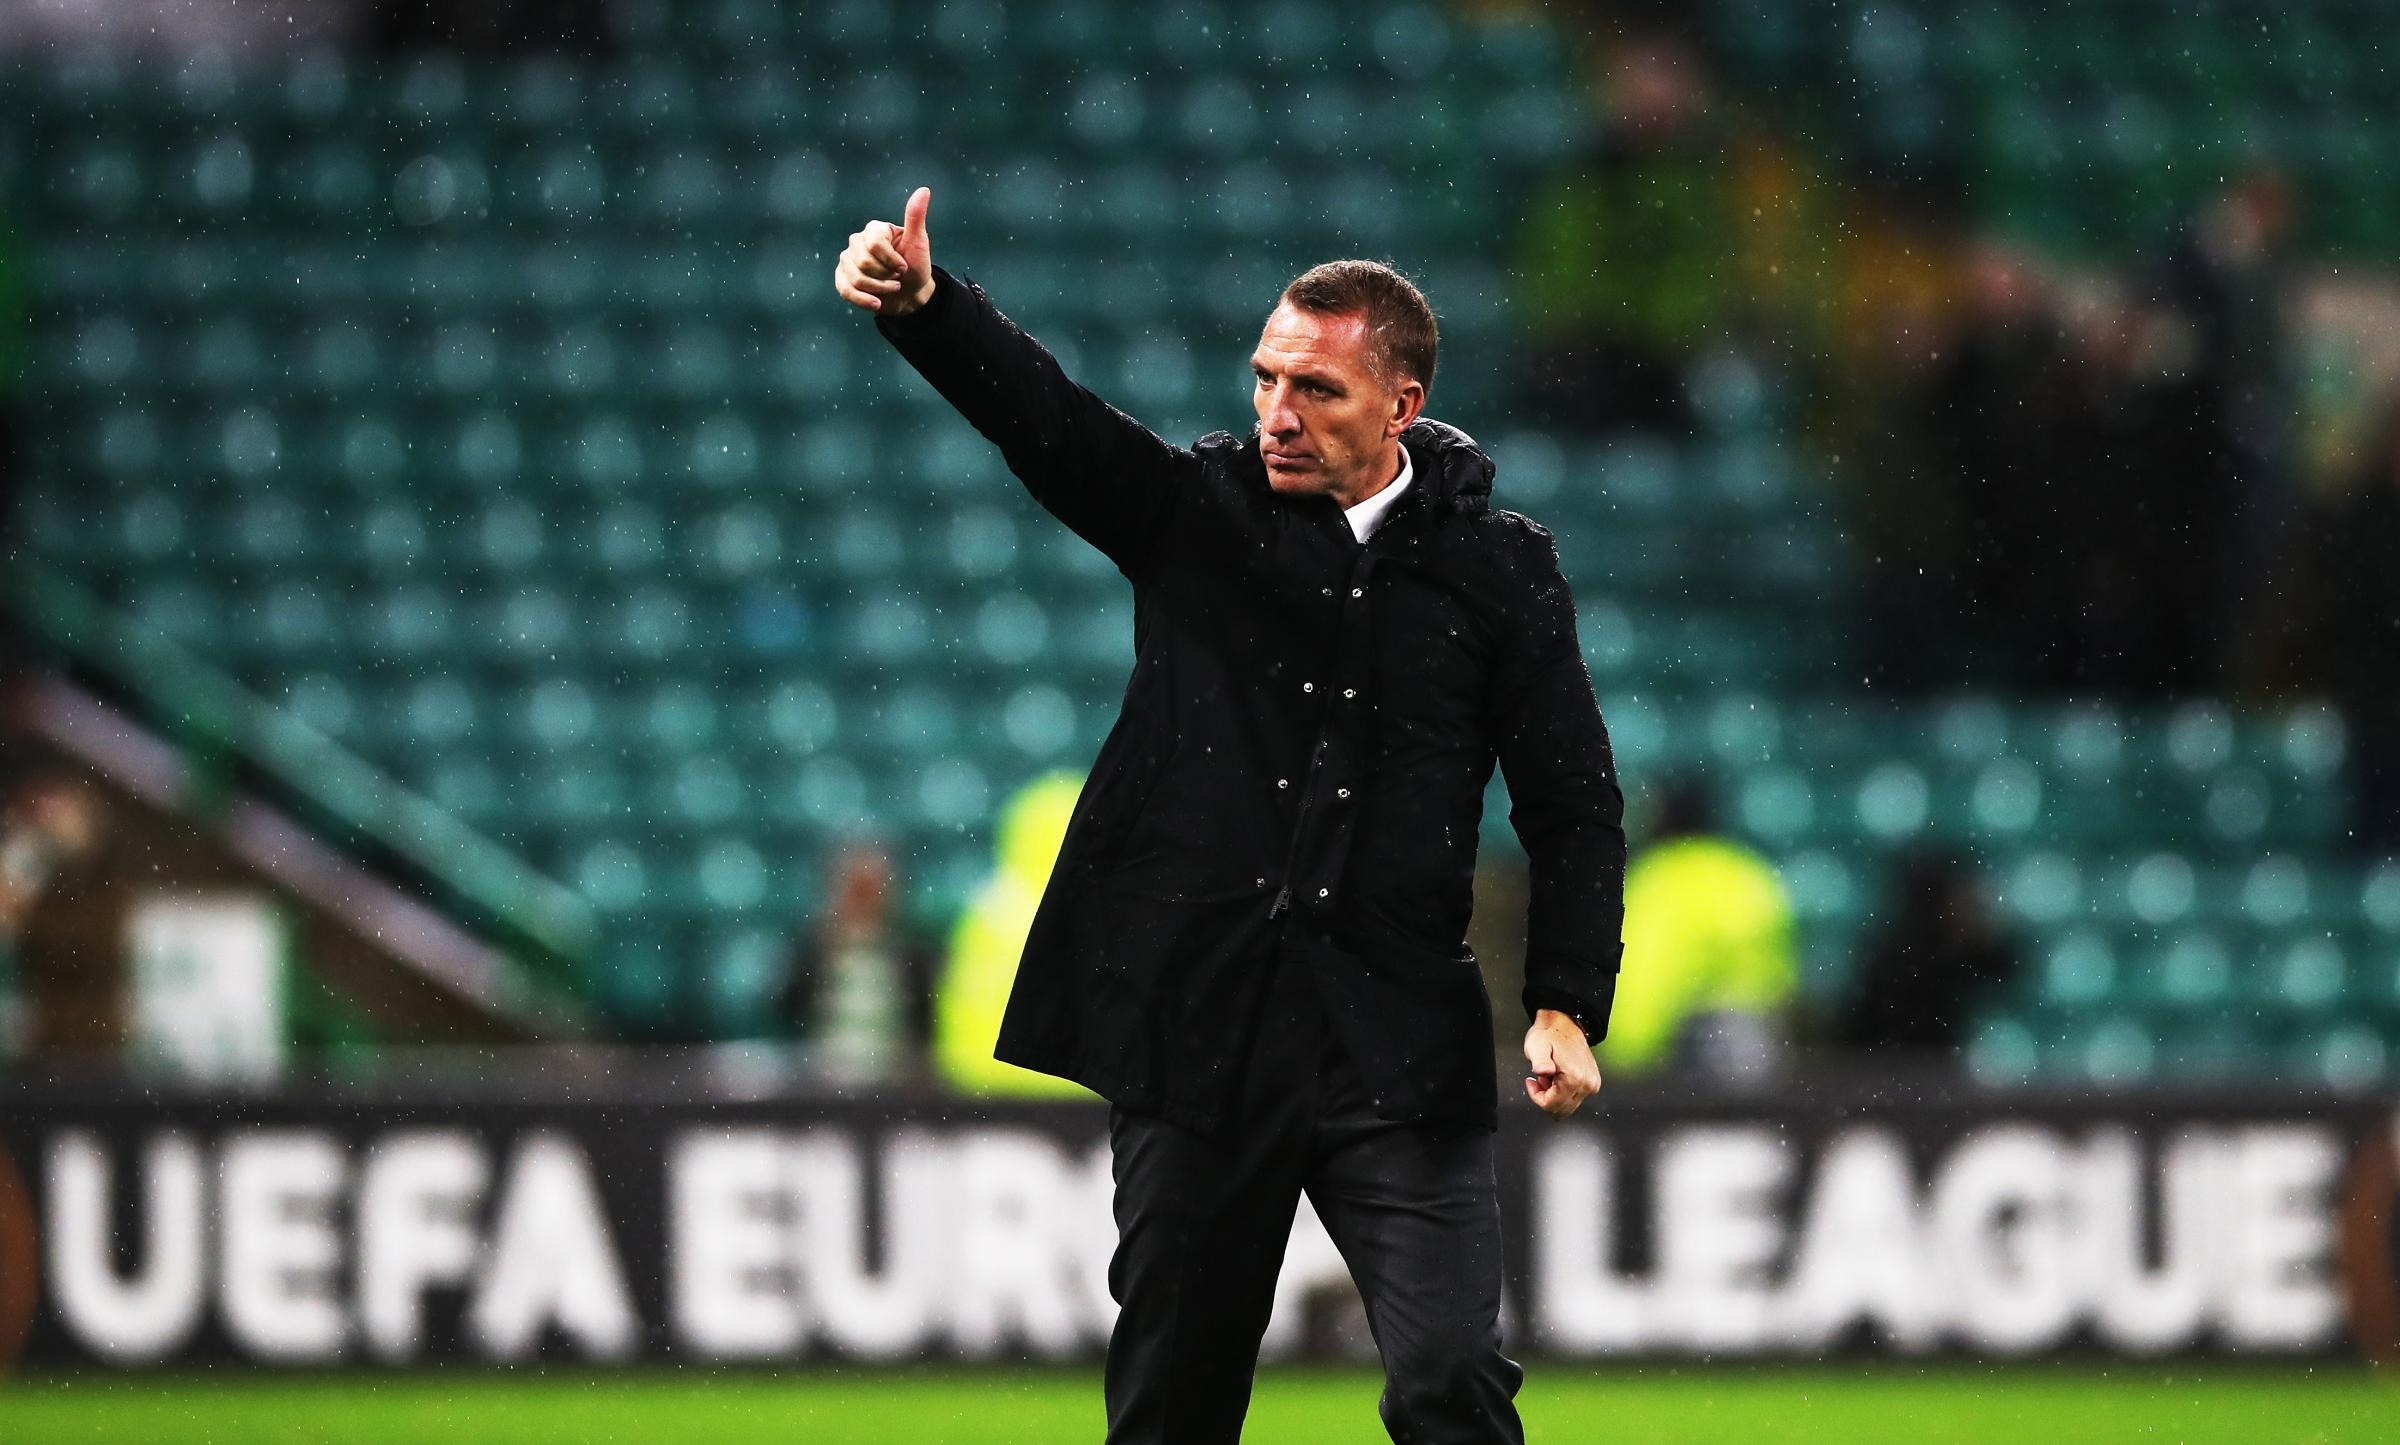 GLASGOW, SCOTLAND - NOVEMBER 08: Celtic manager Brendan Rodgers gestures during the UEFA Europa League Group B match between Celtic and RB Leipzig at Celtic Park on November 8, 2018 in Glasgow, United Kingdom. (Photo by Ian MacNicol/Getty Images).